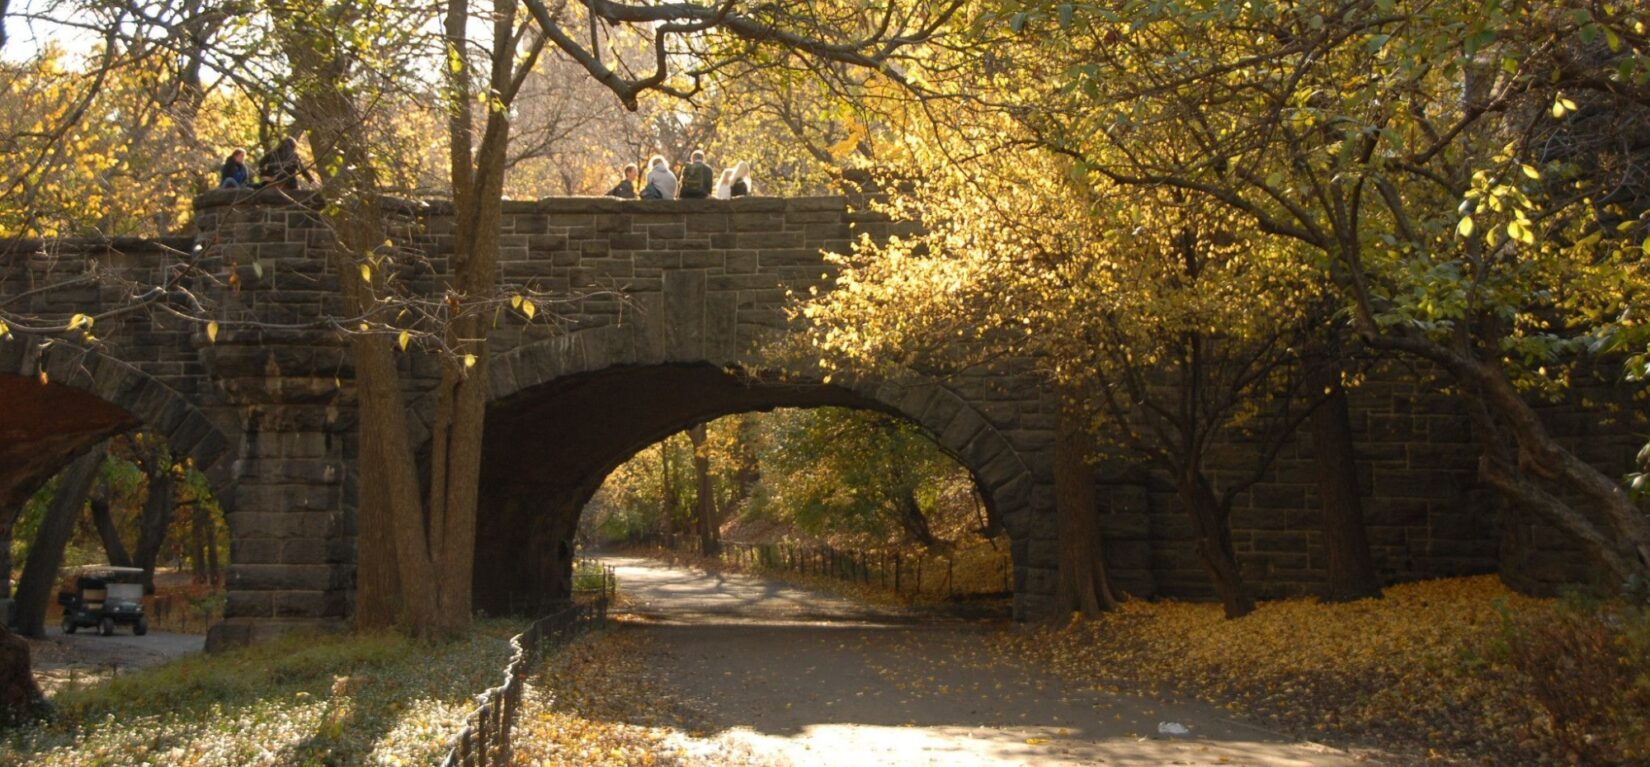 The Eaglevale Arch is seen beneath looming branches of fall leaves